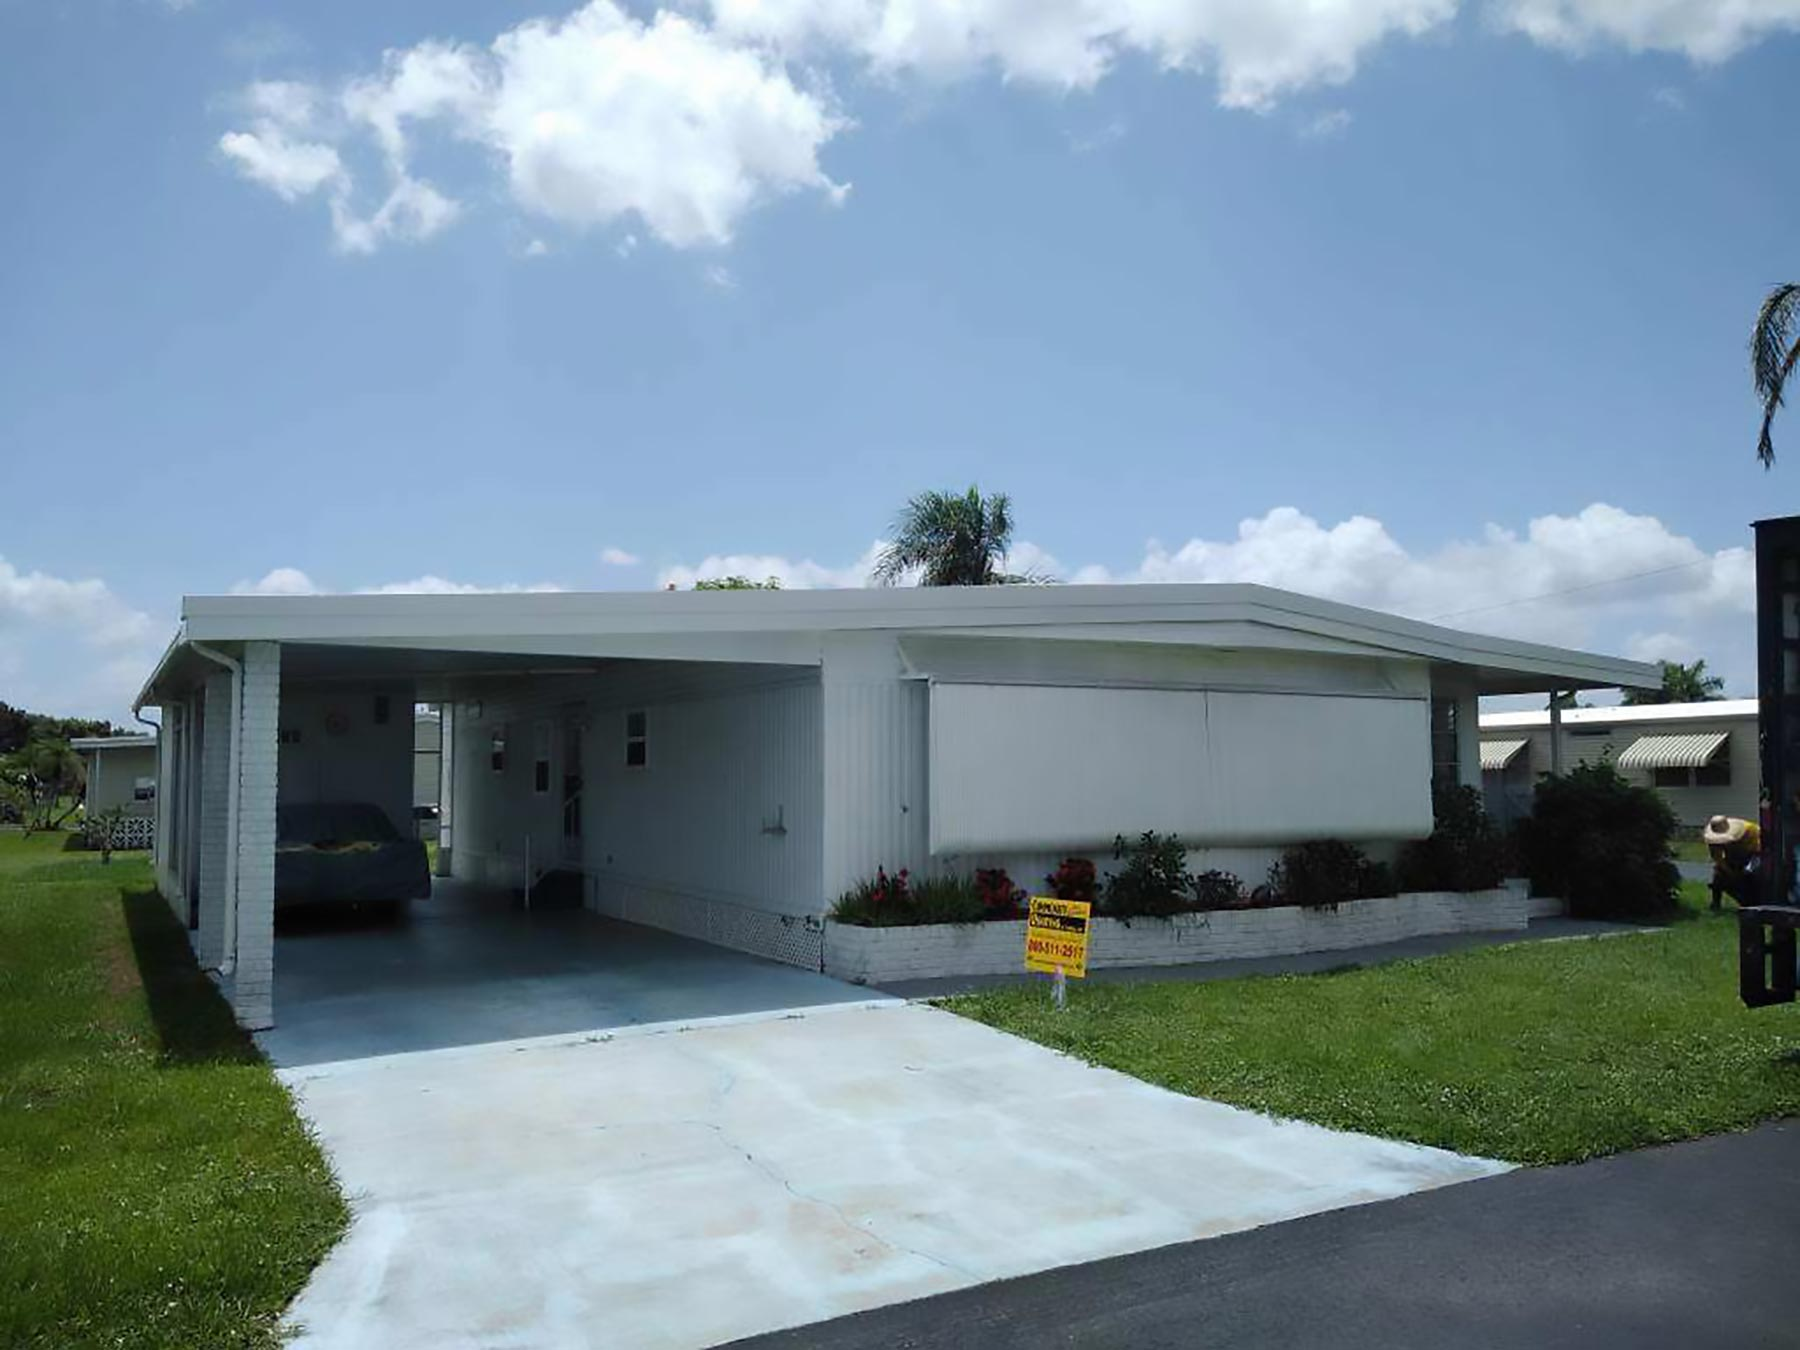 Mobile Home Roof Over North Fort Myers | Community Roofing ... on mobile home construction, mobile home decks, mobile home room additions florida, mobile home roofing costs, mobile home metal roofing materials,